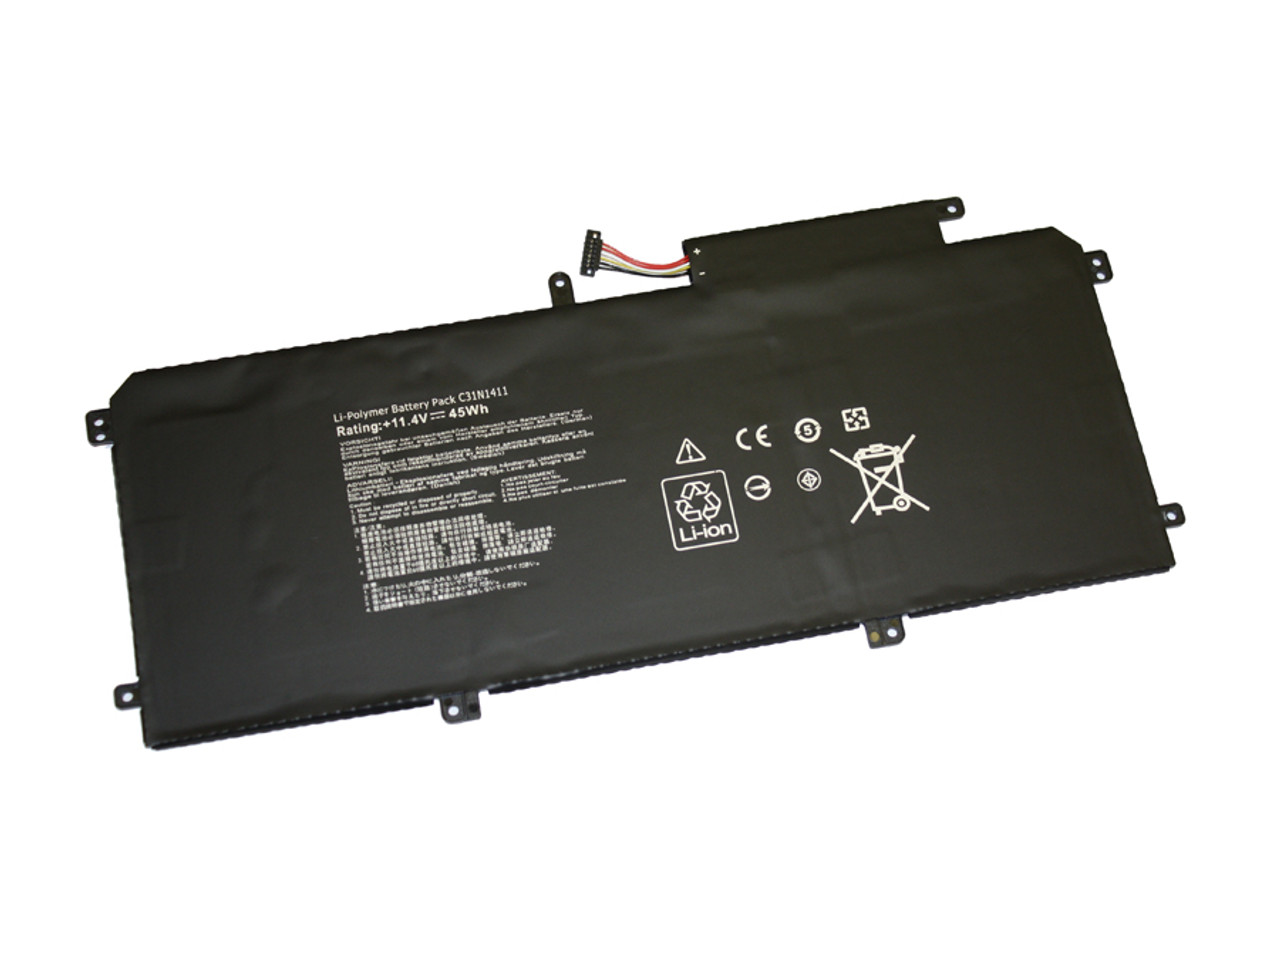 Replacement 3 cell battery for Asus Zenbook UX305